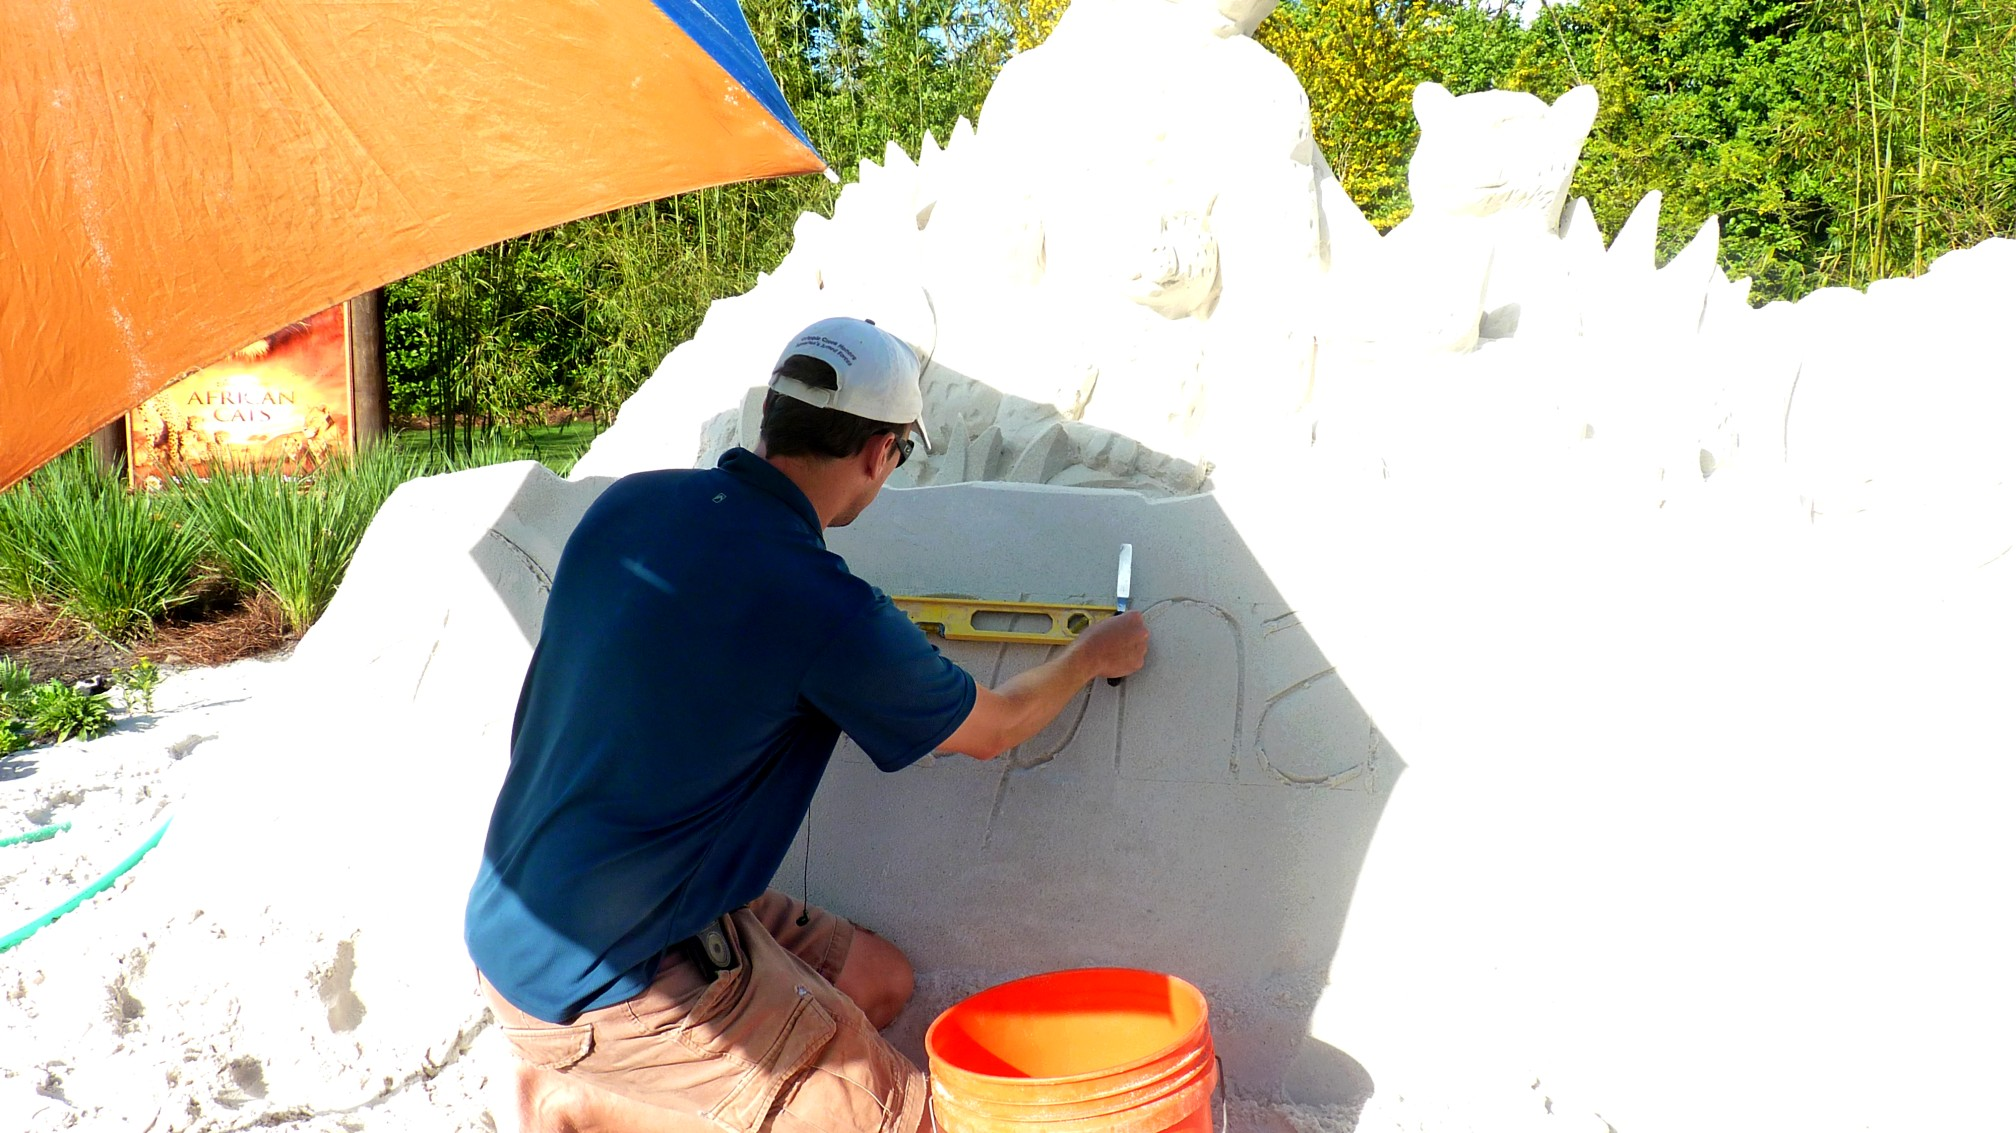 Jud's Disney Picture of the Day: CARVING SAND